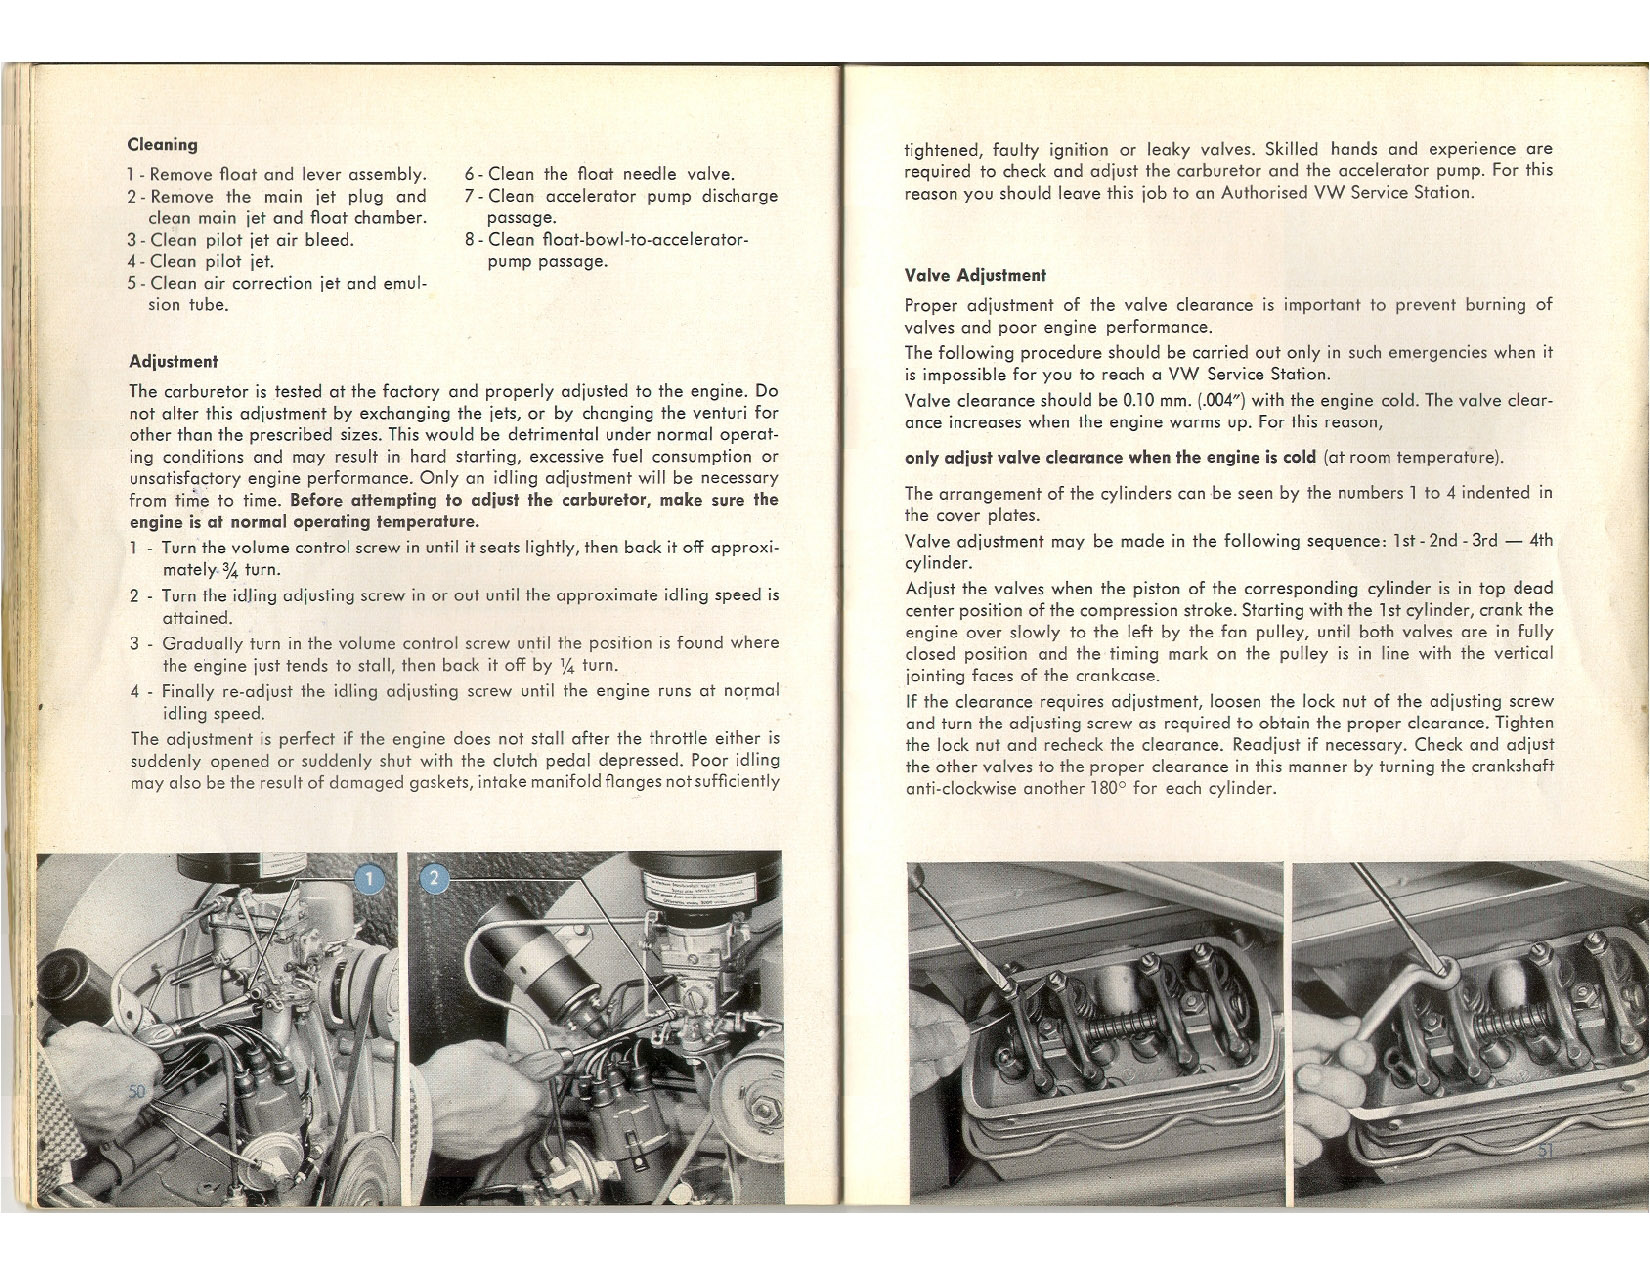 Beetle 1958 1967 View Topic The Gas Input Into Electric Fuel Pump For 7076 Porsche Vw Transporter Vanagon 912 With A Filter Https Archives Lit 60accessories Page3